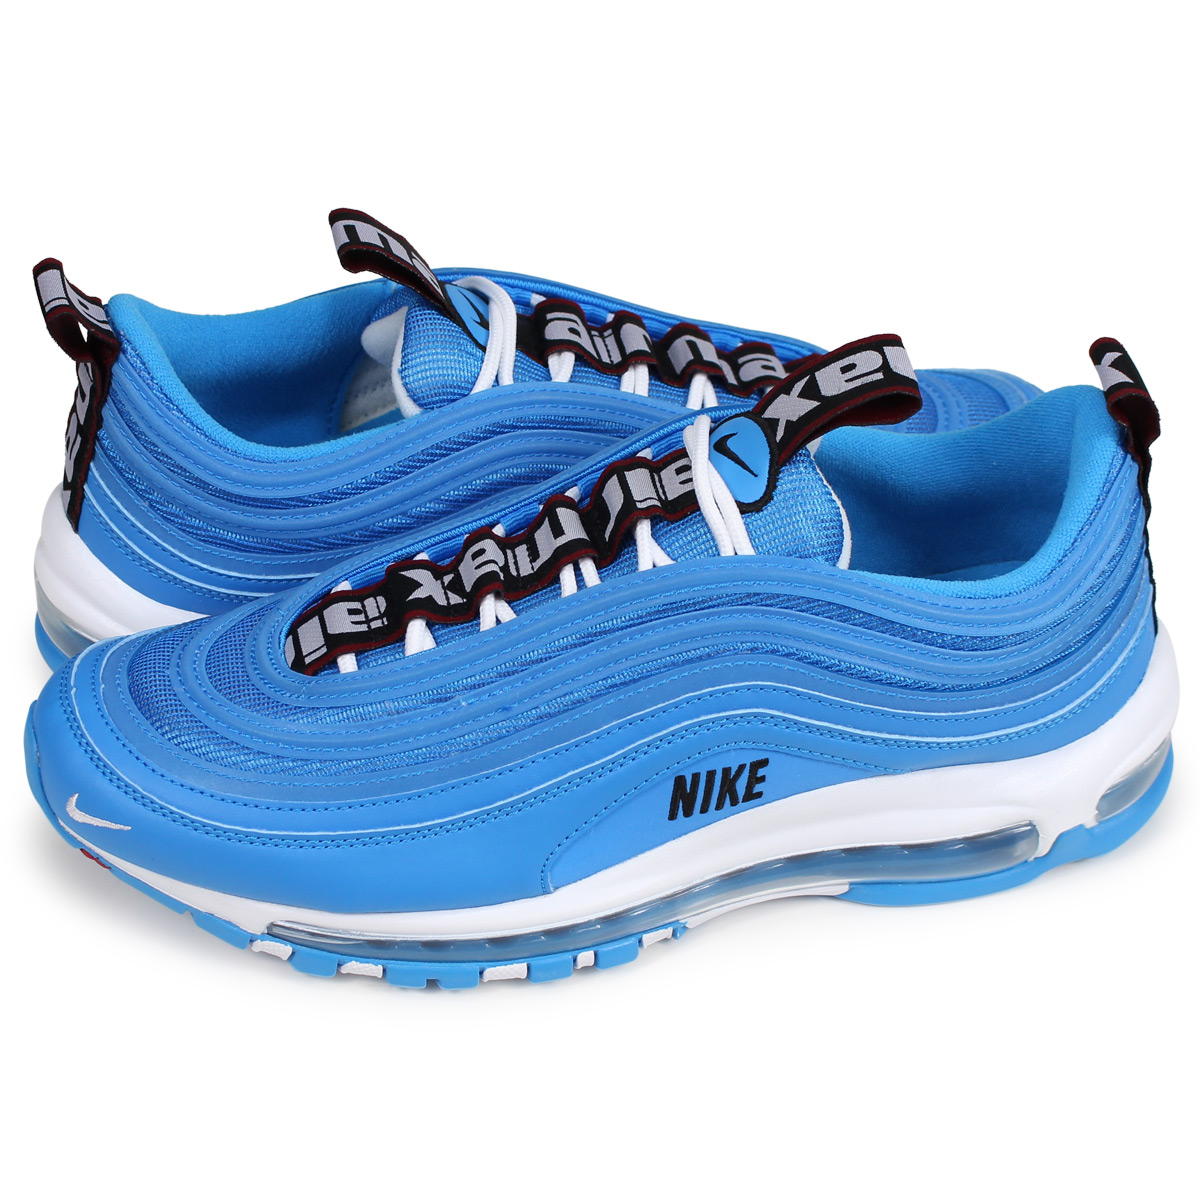 c2a7d4142ce85 [brand NIKE getting high popularity from sneakers freak]. Air Max 97 ...